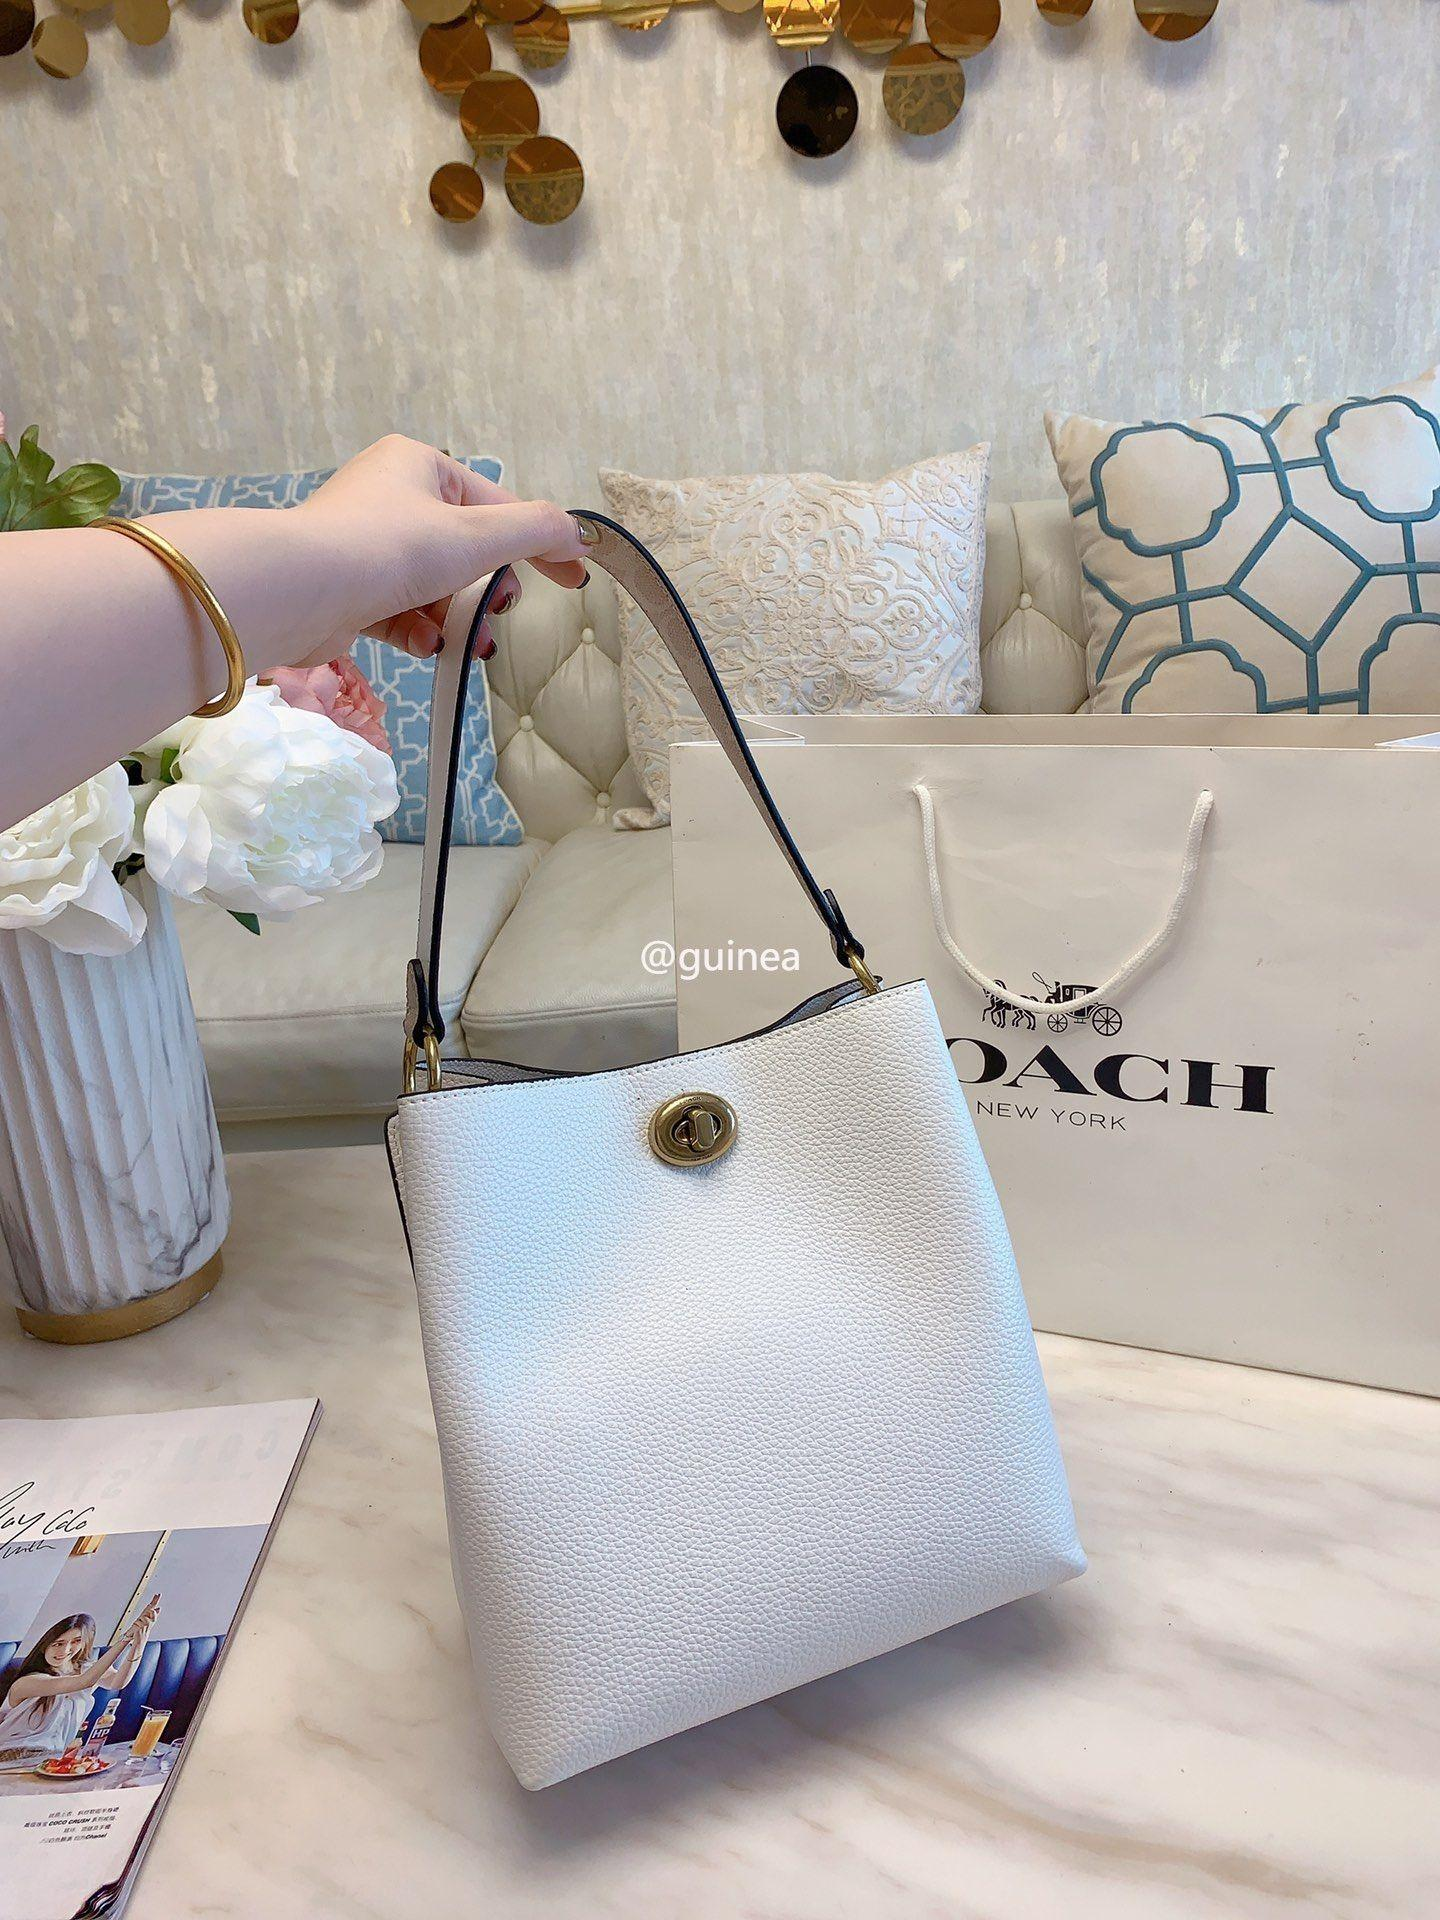 Coach New Charlie Bucket Bag Bucket Shoul Women S Fashion Clothes Outerwear On Carousell